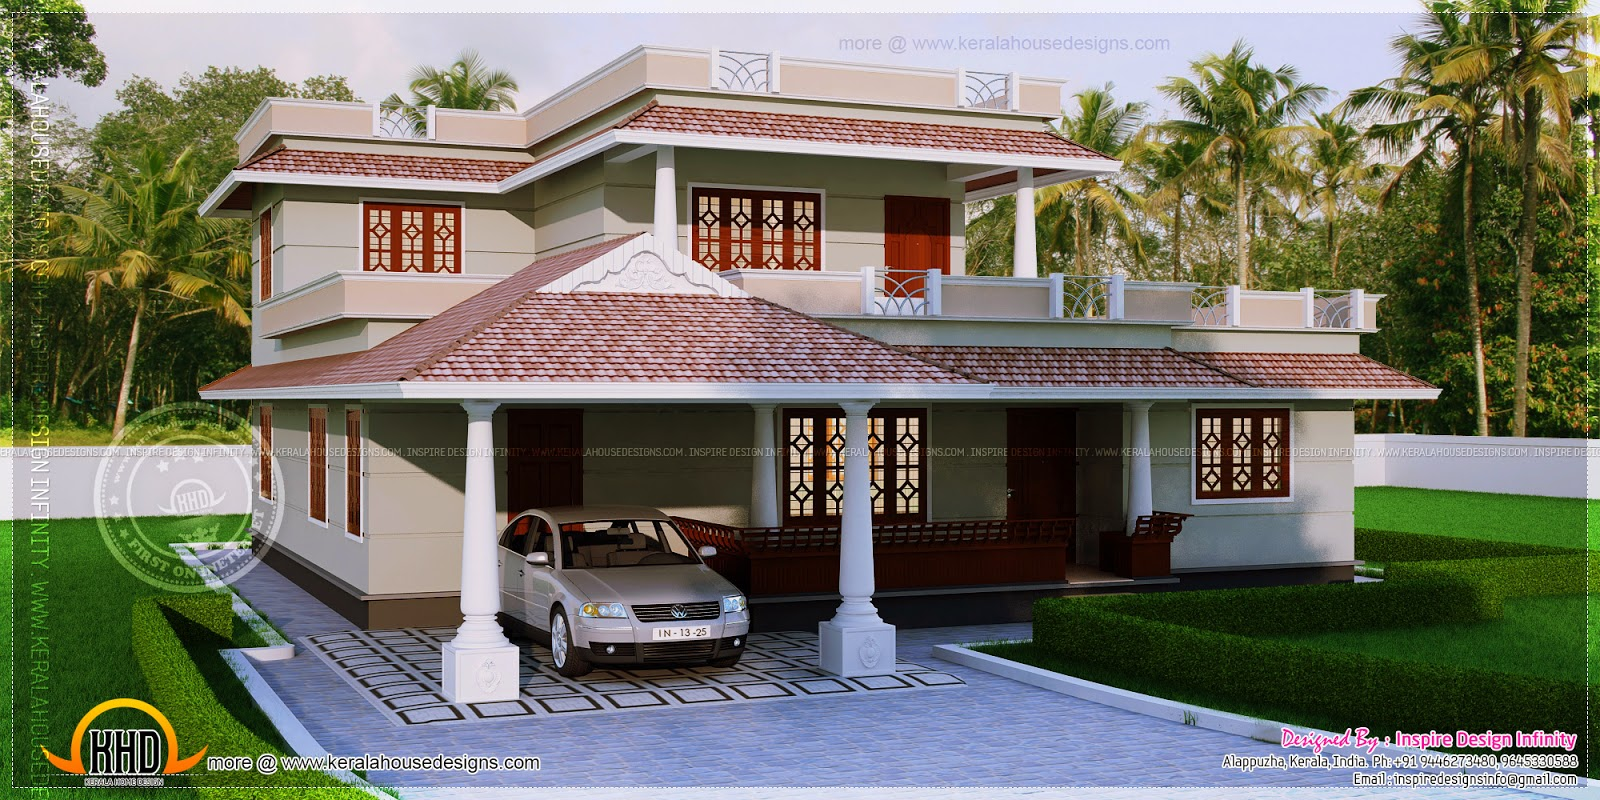 4 bedroom kerala style house in 300 square yards kerala for South indian model house plan